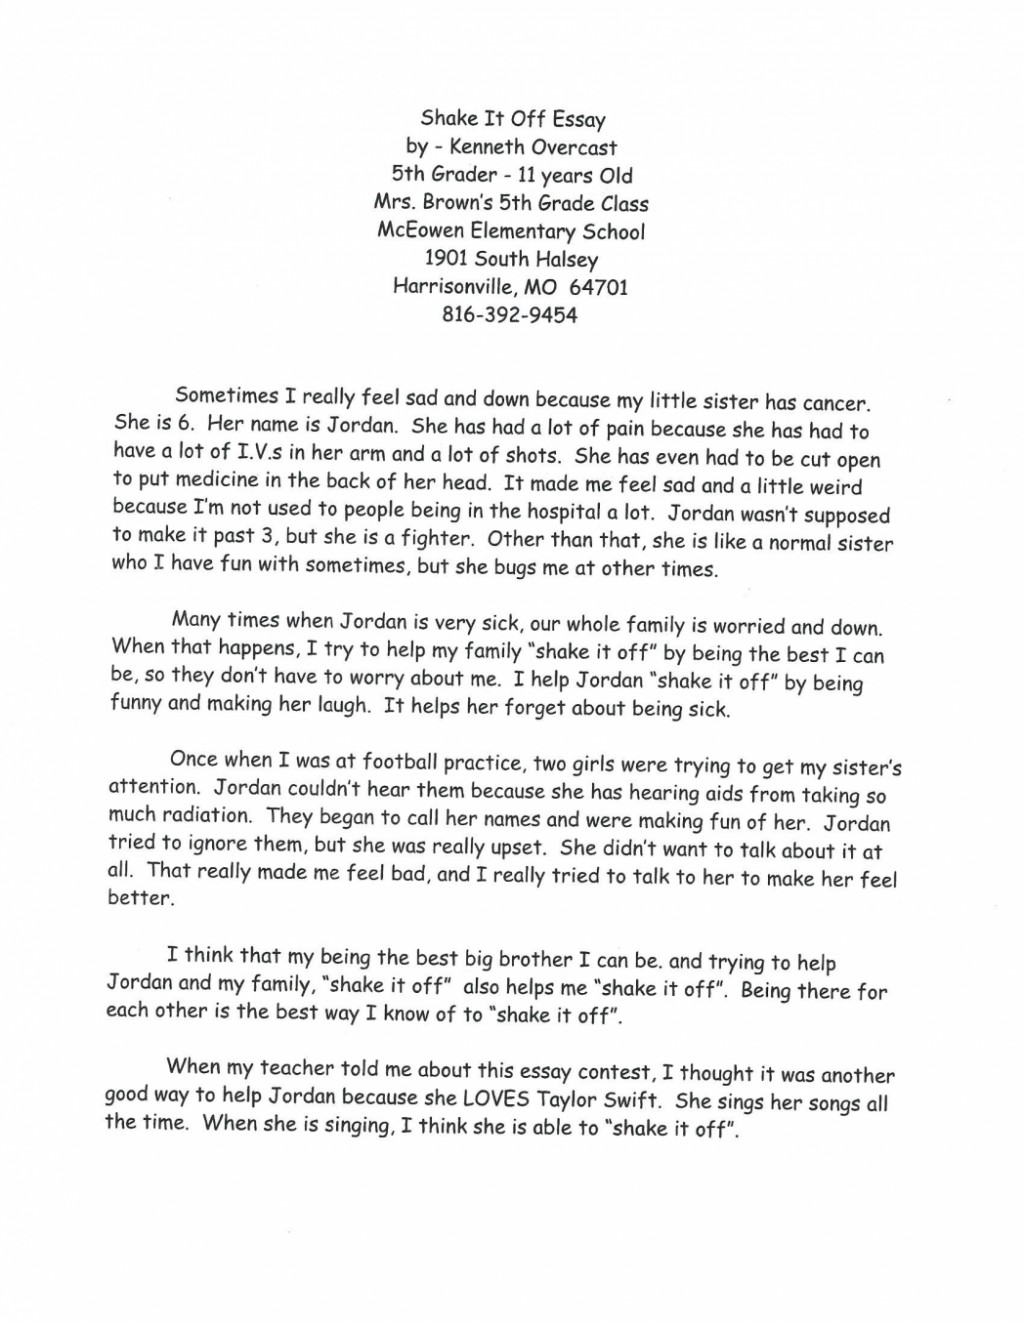 016 My Dream Home Essay Young Missouri Girl Fighting For Her Life Dreams House Writing Ken Sweet 1048x1356 Dreaded Spm In English A Beautiful Hindi Large